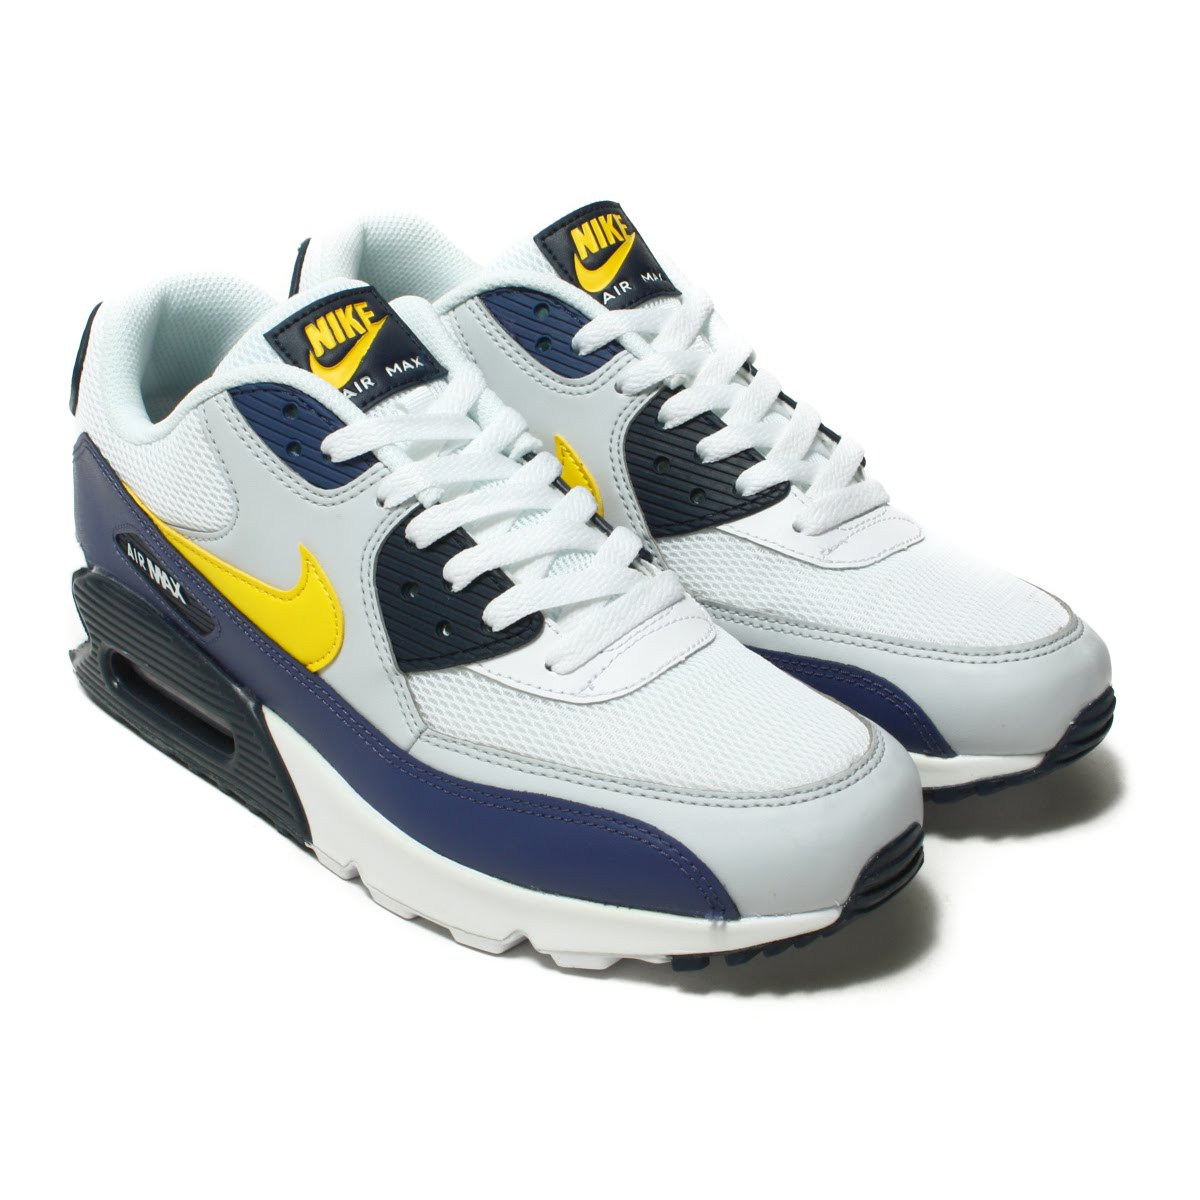 reputable site 893d2 817c1 NIKE AIR MAX 90 ESSENTIAL (Kie Ney AMAX 90 essential) WHITE TOUR YELLOW-BLUE  RECALL 18SP-I